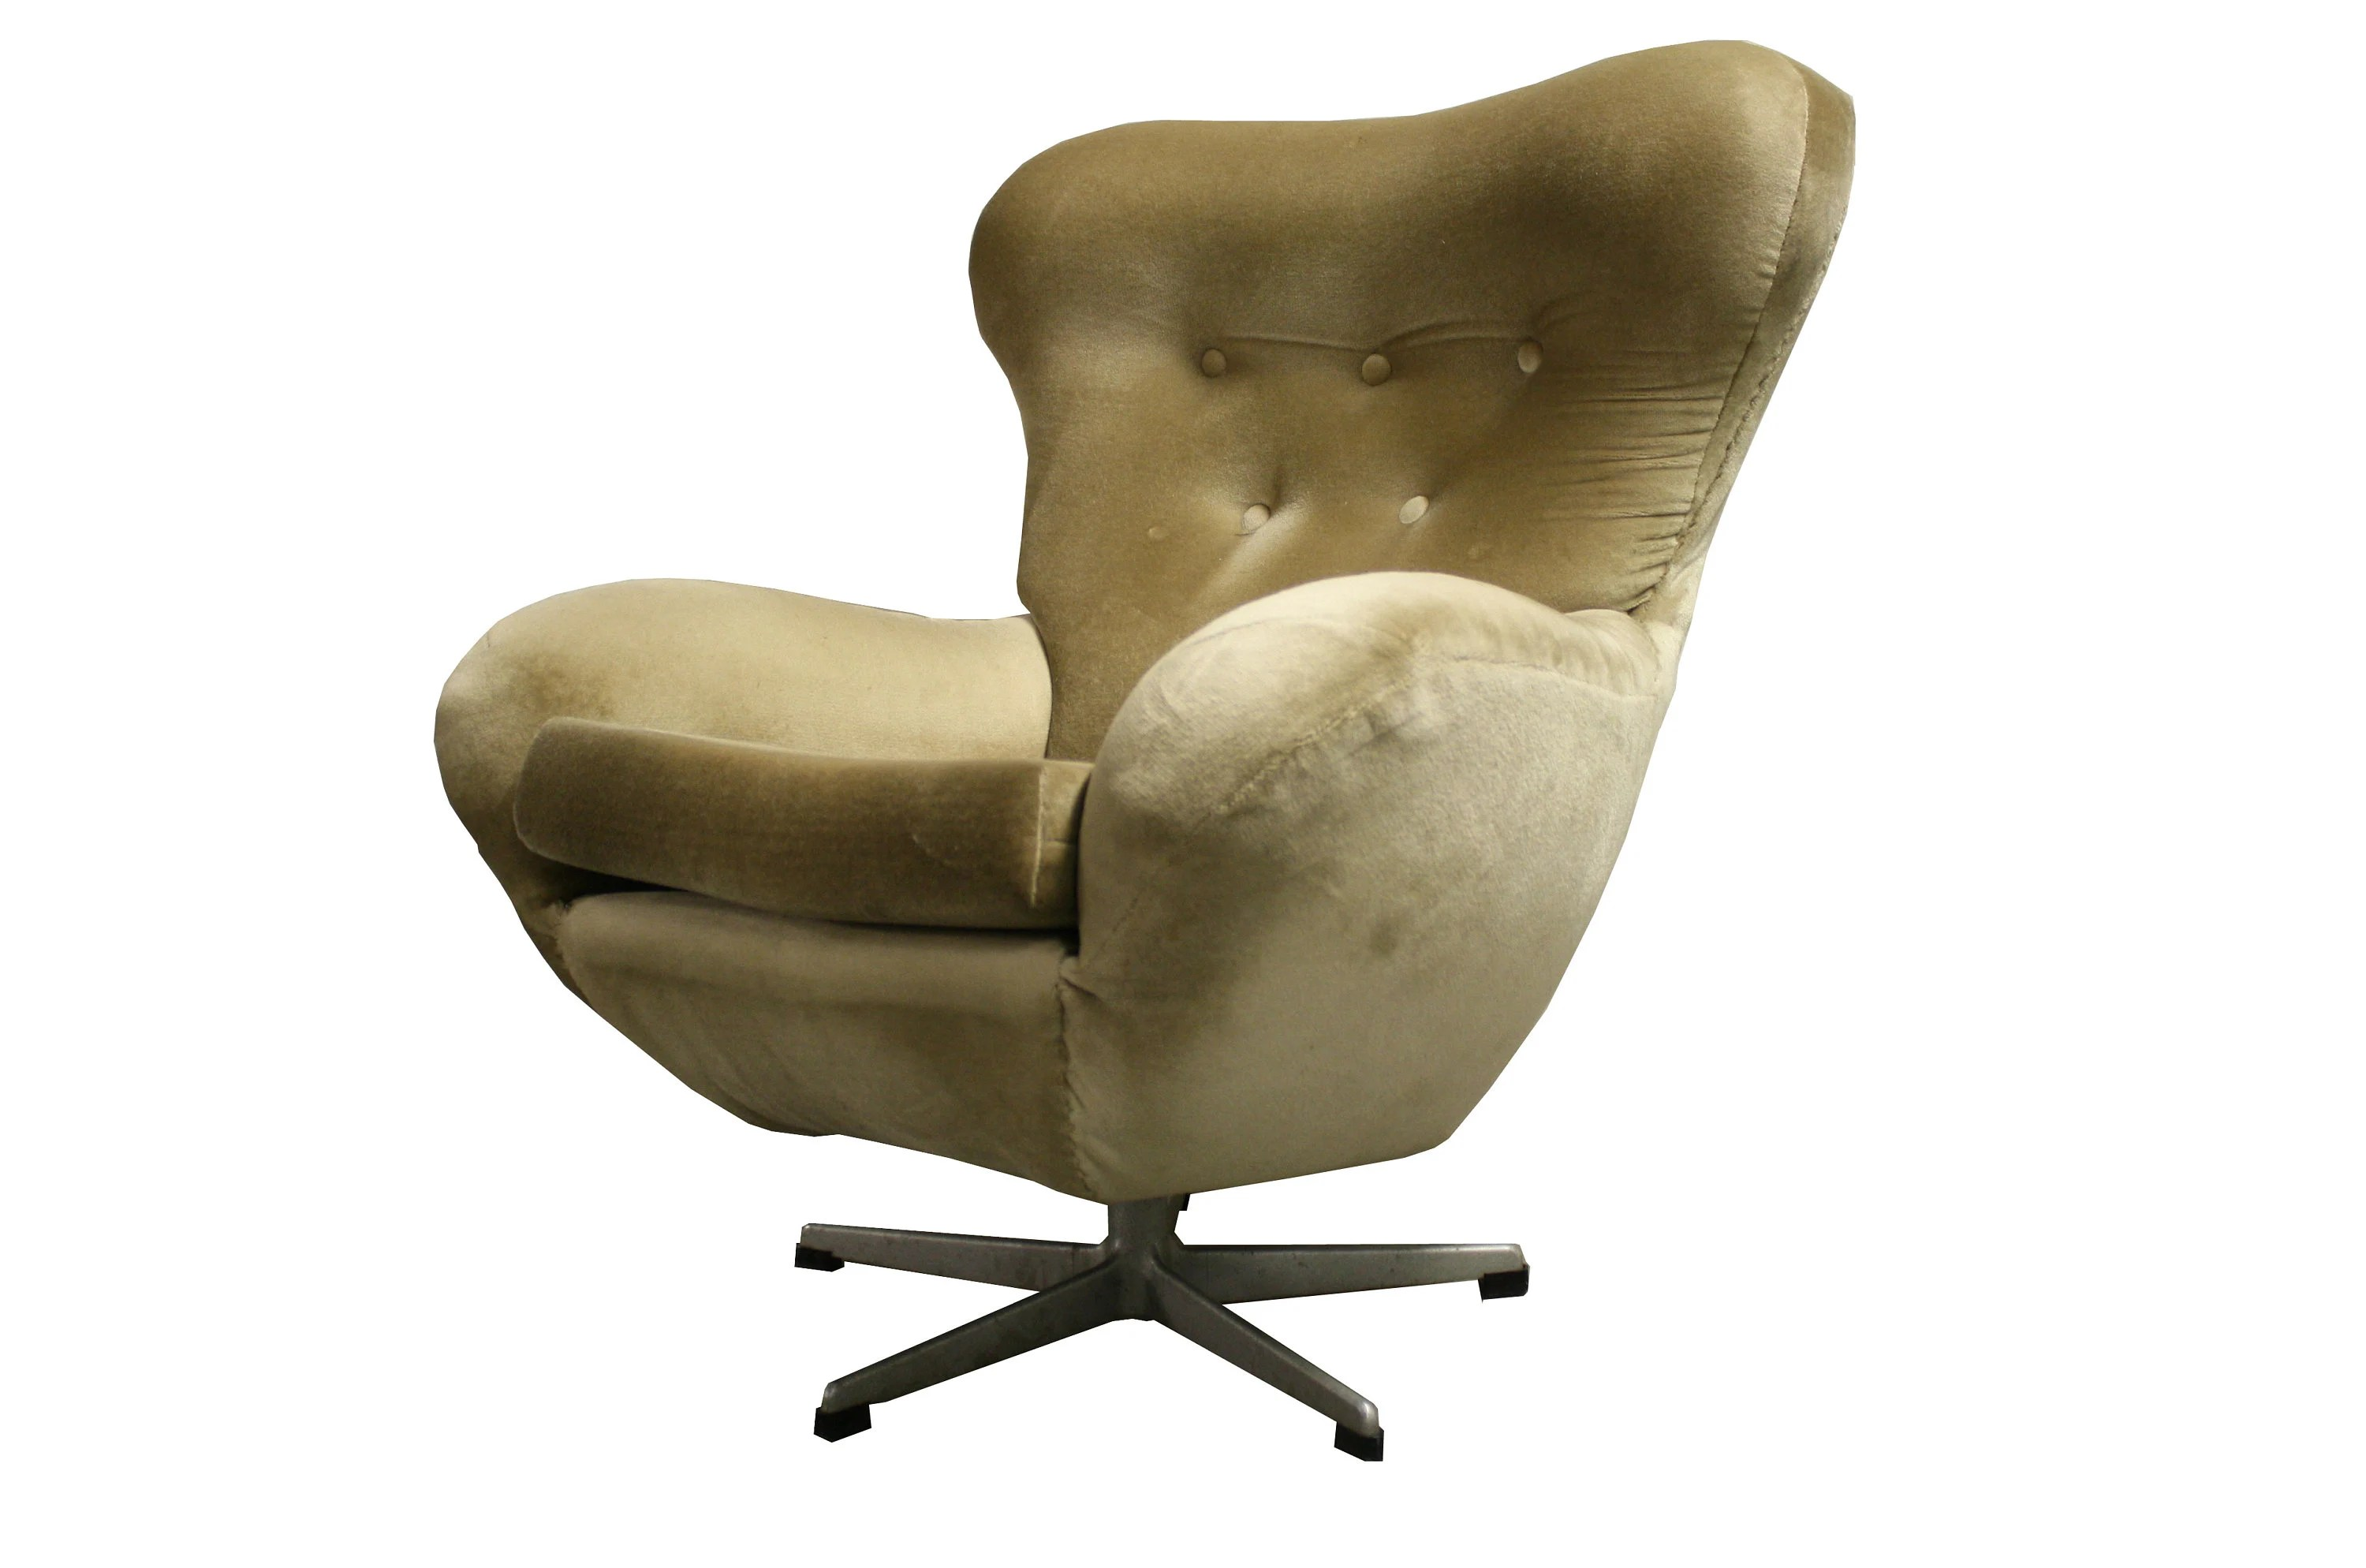 Vintage Swivel Chair Mid Century Modern Design Egg Swivel Chair 1960 S Vintage Swivel Chair Lounge Chair Relax Chair Design Chair 1960 S Chair